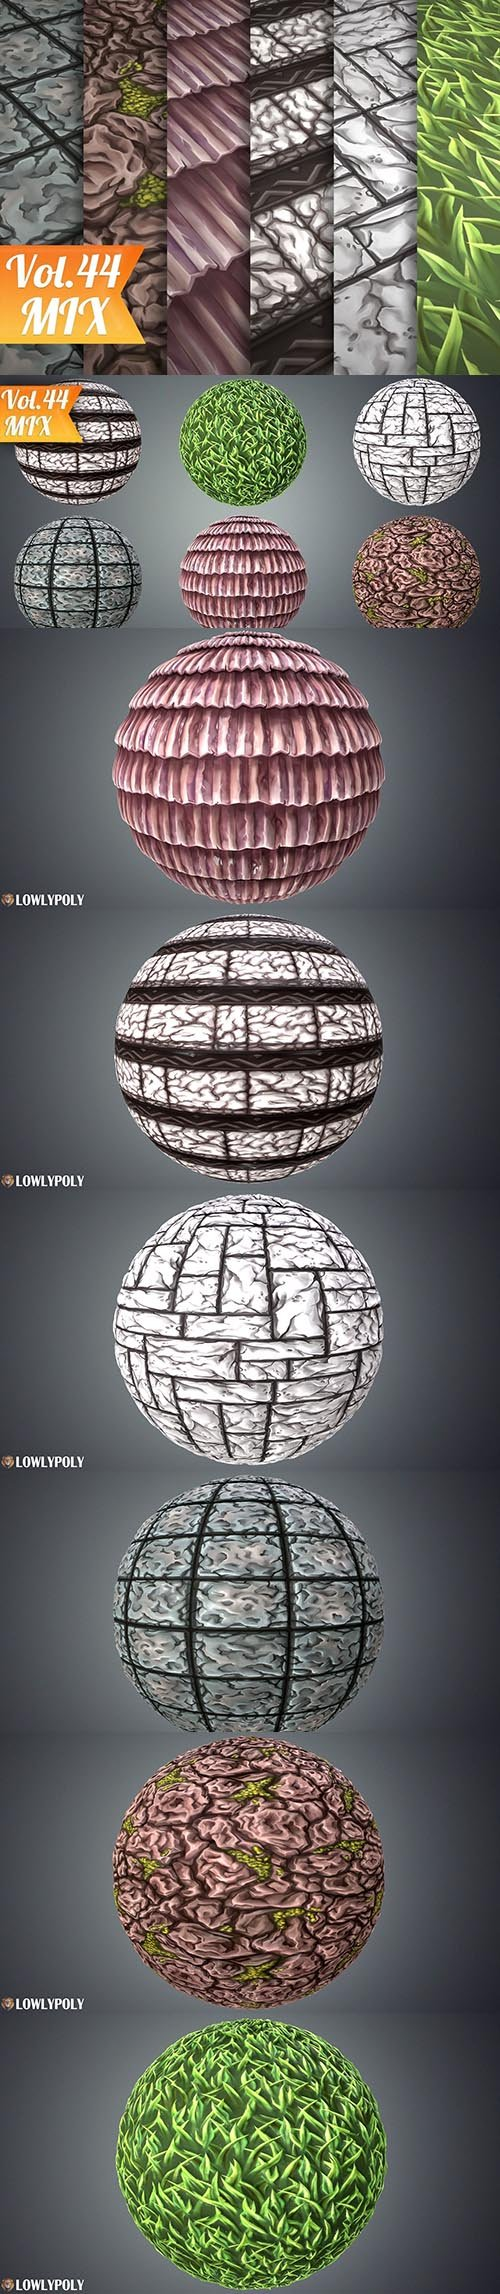 Stylized Mix Vol 44 - Hand Painted Texture Pack Texture